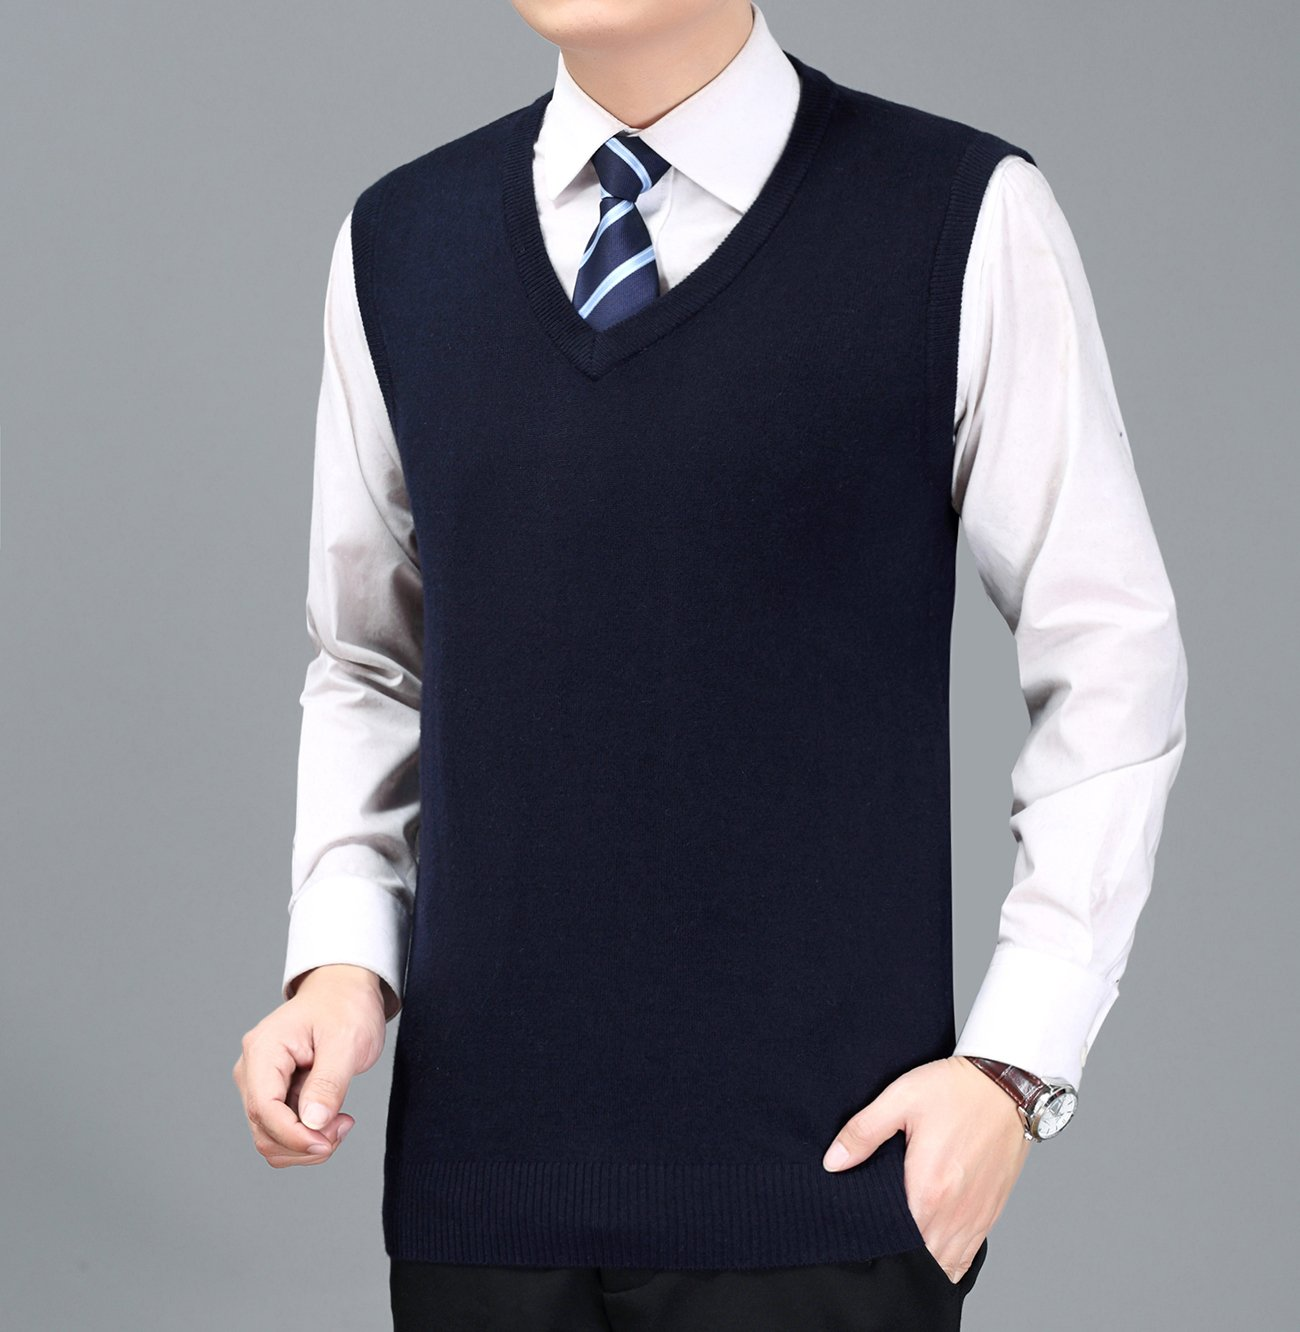 Mens V Neck Sleeveless Vest Classic Business Gentleman Knitwear Knitted Waistcoat Sweater Cardigans Tank Tops